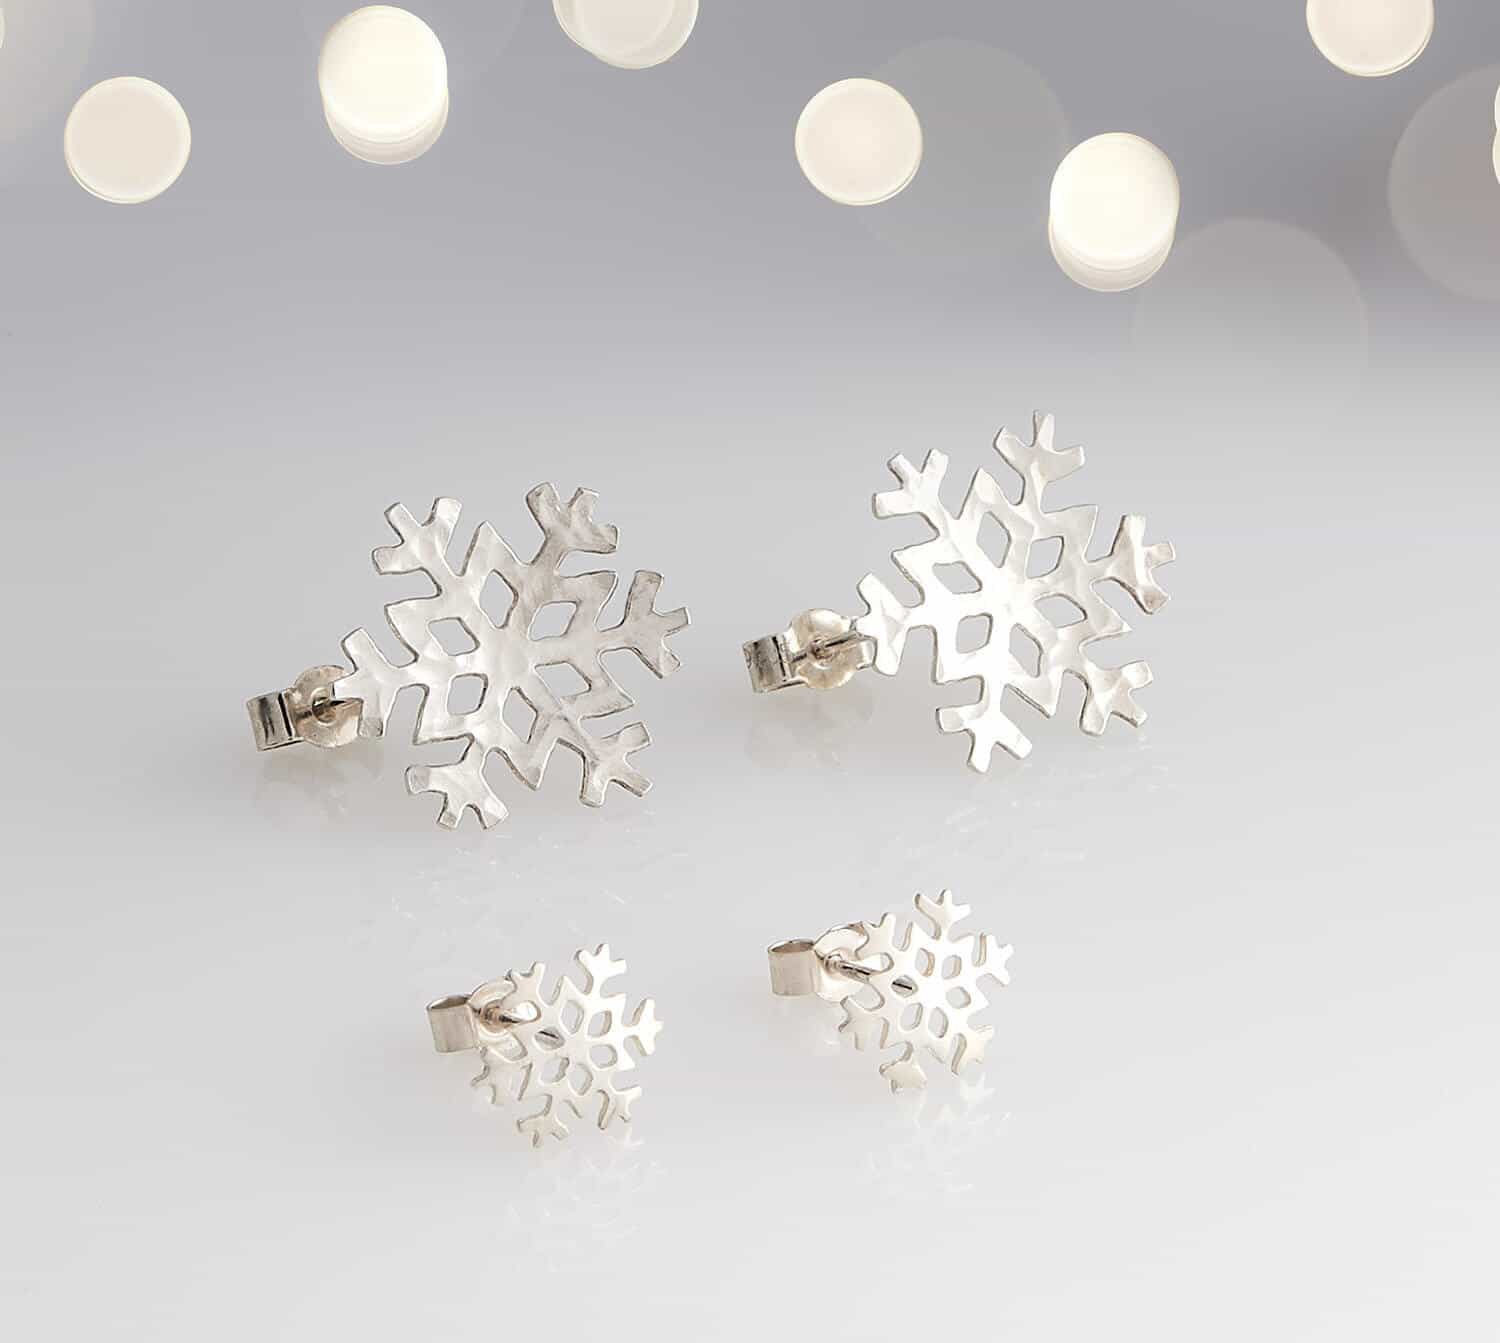 Snowflake silver jewellery stud earrings product photograph